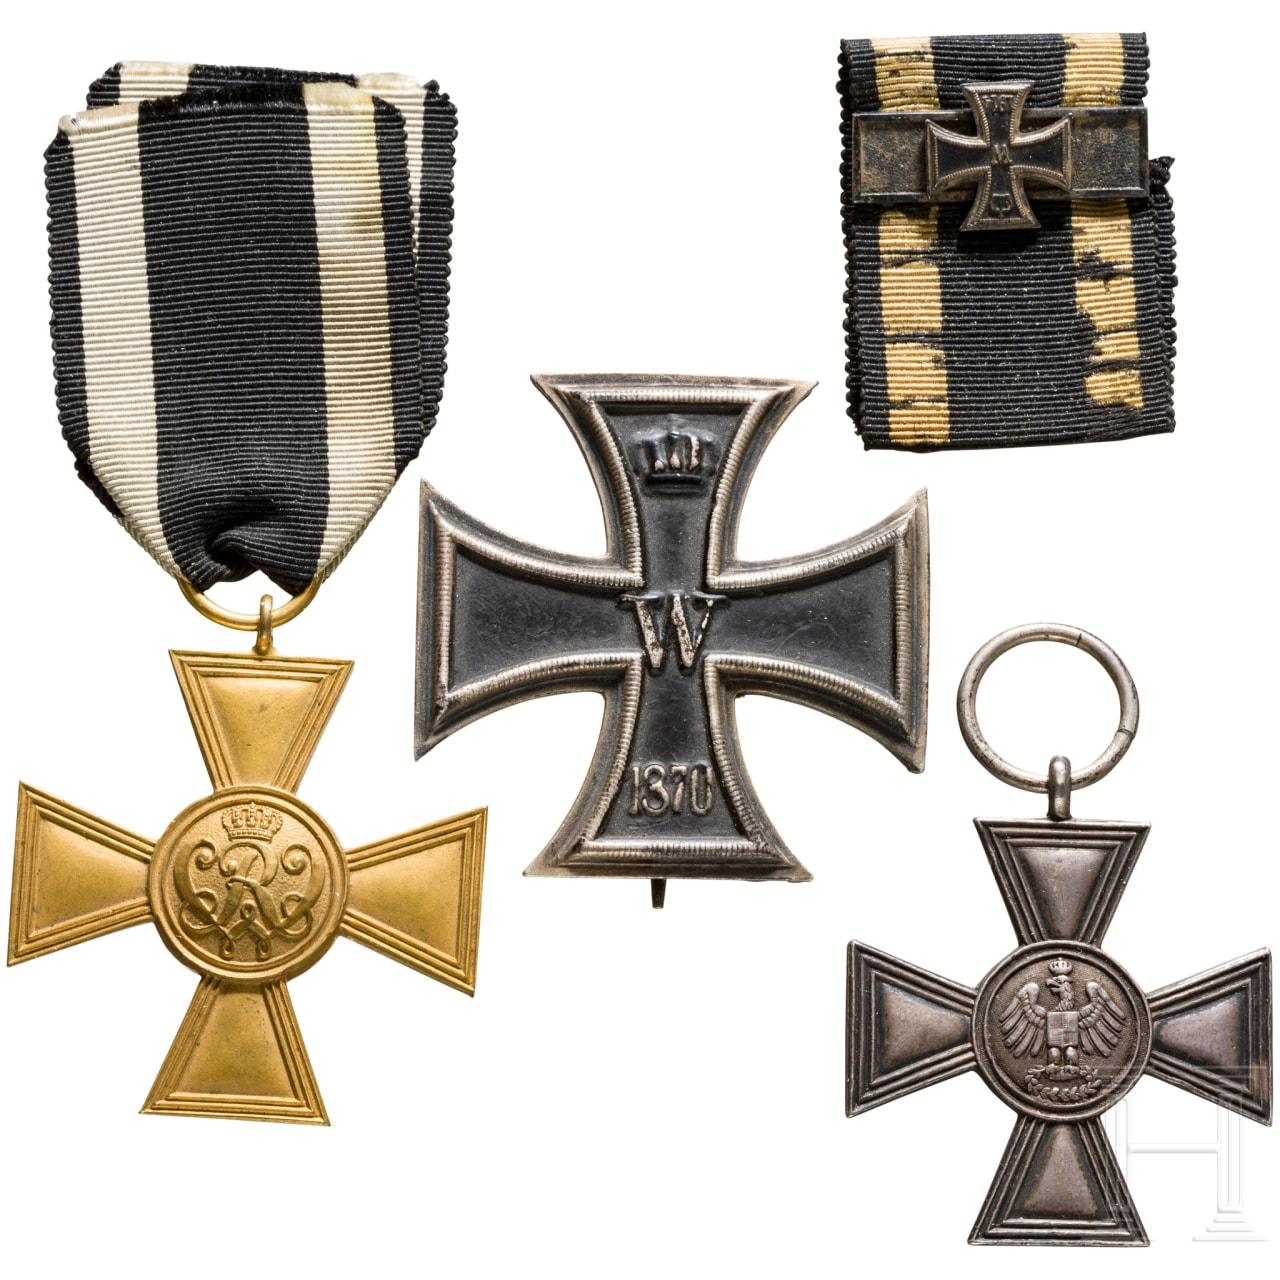 Four museum or collector's productions of awards from Prussia